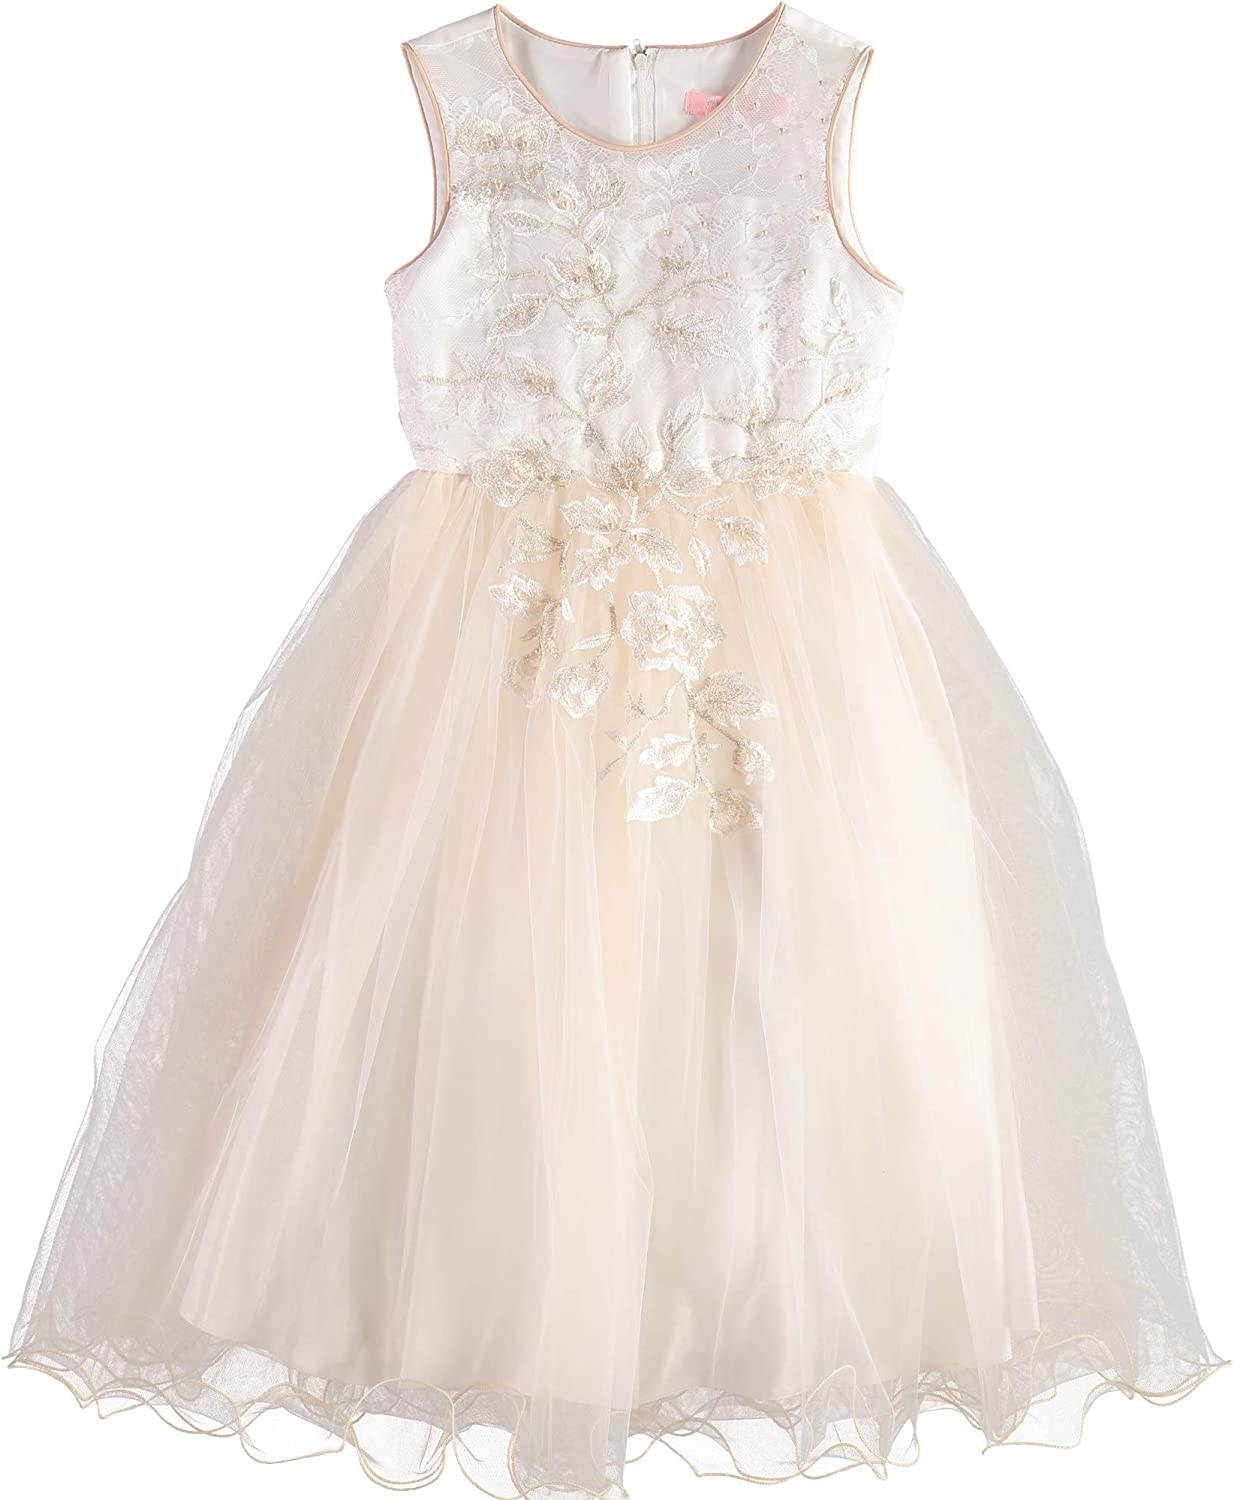 Pink Butterfly Girls Special Occasion Sleeveless Tulle Dress